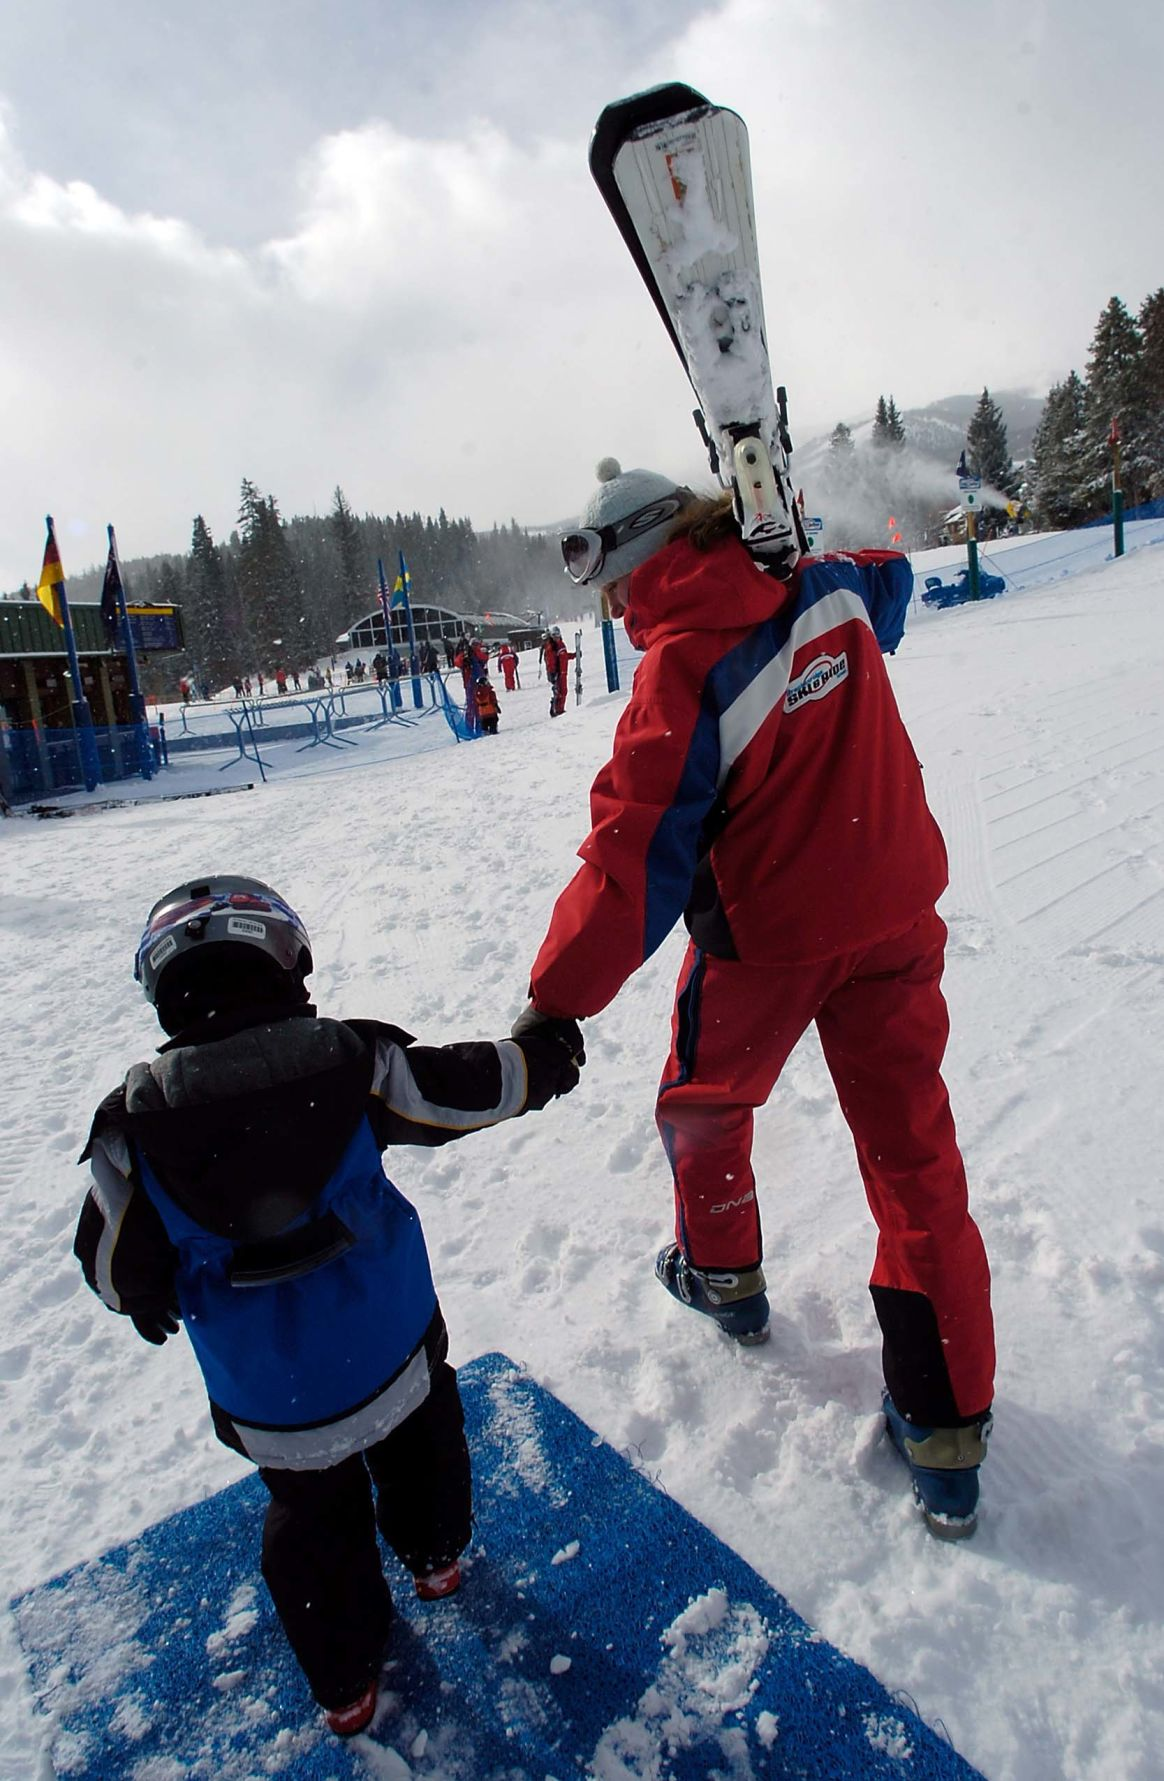 Best place in Colorado to teach a kid to ski: Our top 5